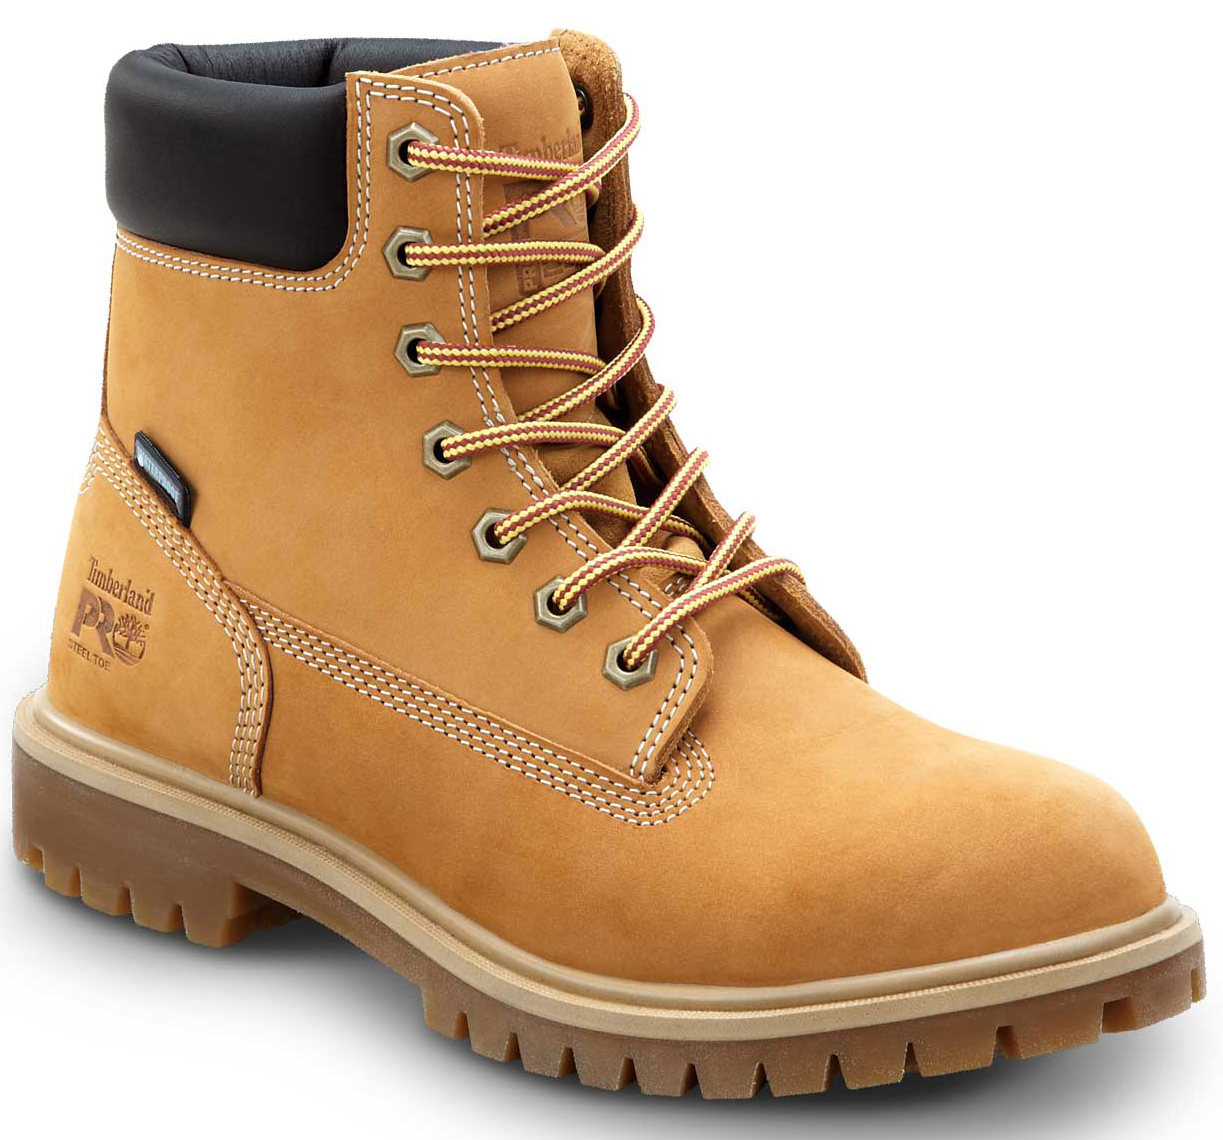 bee1a0f0f8e Timberland PRO 6 IN Direct Attach Women's Steel Toe Boot